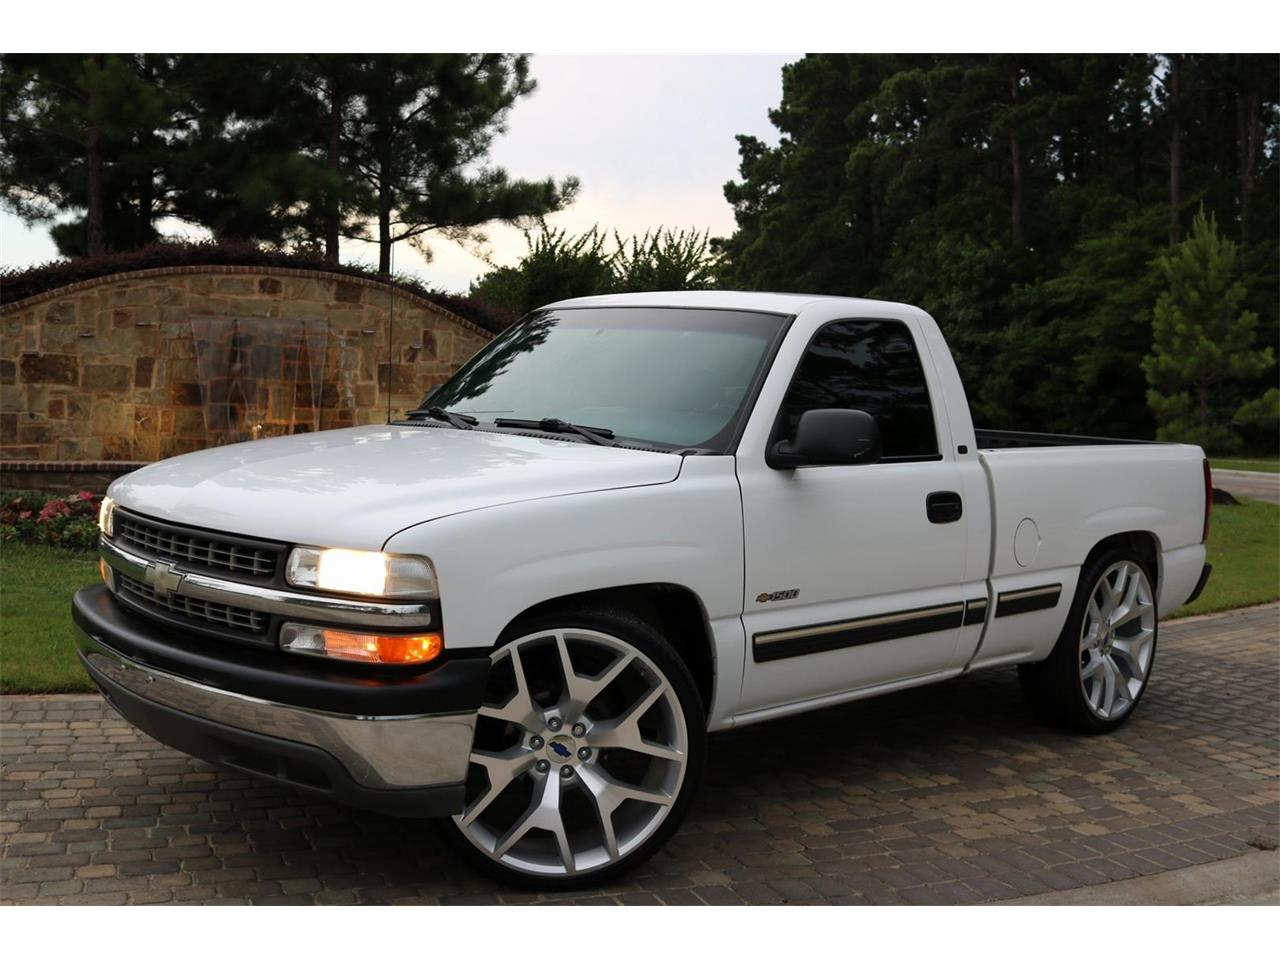 Large Picture of 2000 Silverado located in Texas Offered by Texas Trucks and Classics - PS94